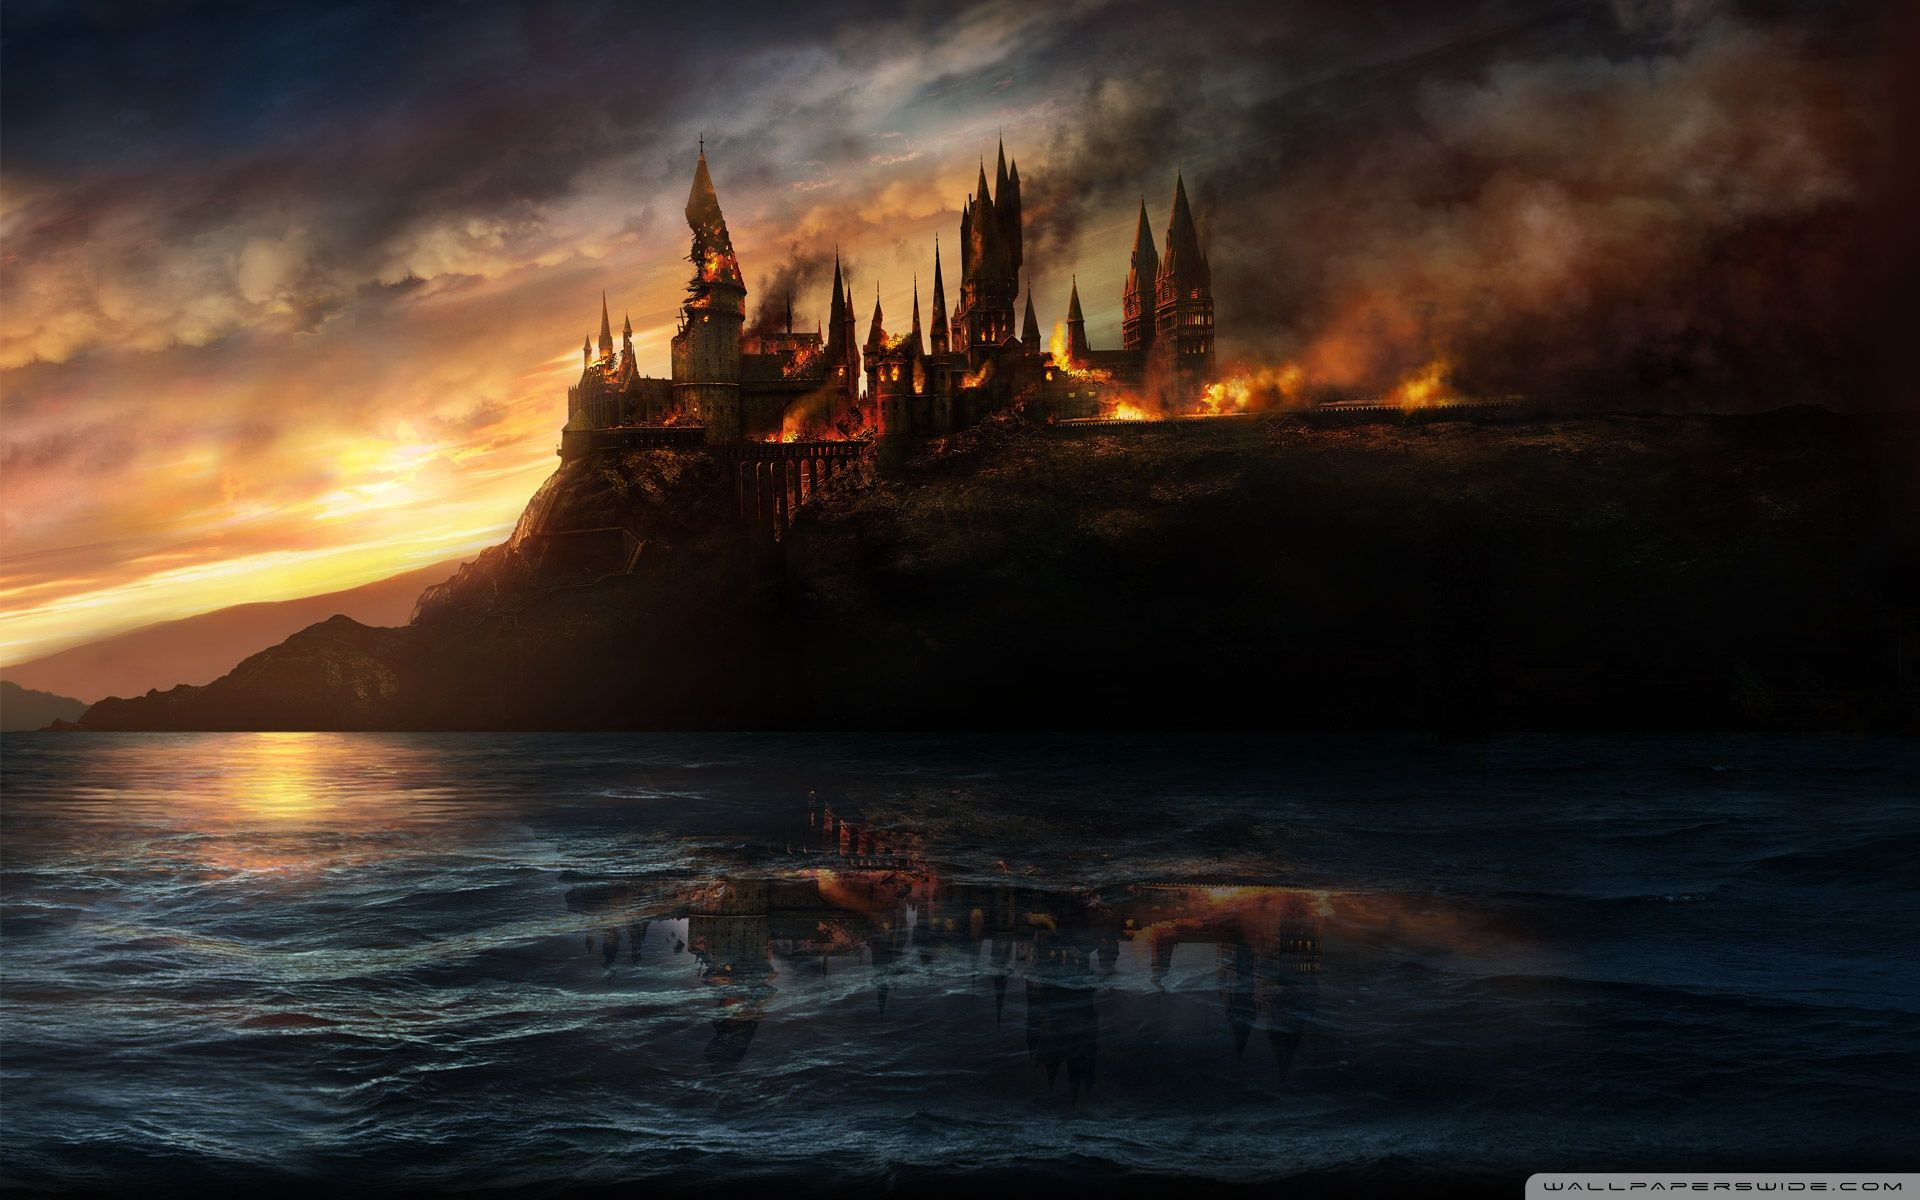 Wallpaperswide Com Harry Potter Hd Desktop Wallpapers For Harry Potter Background Harry Potter Wallpaper Hogwarts Castle